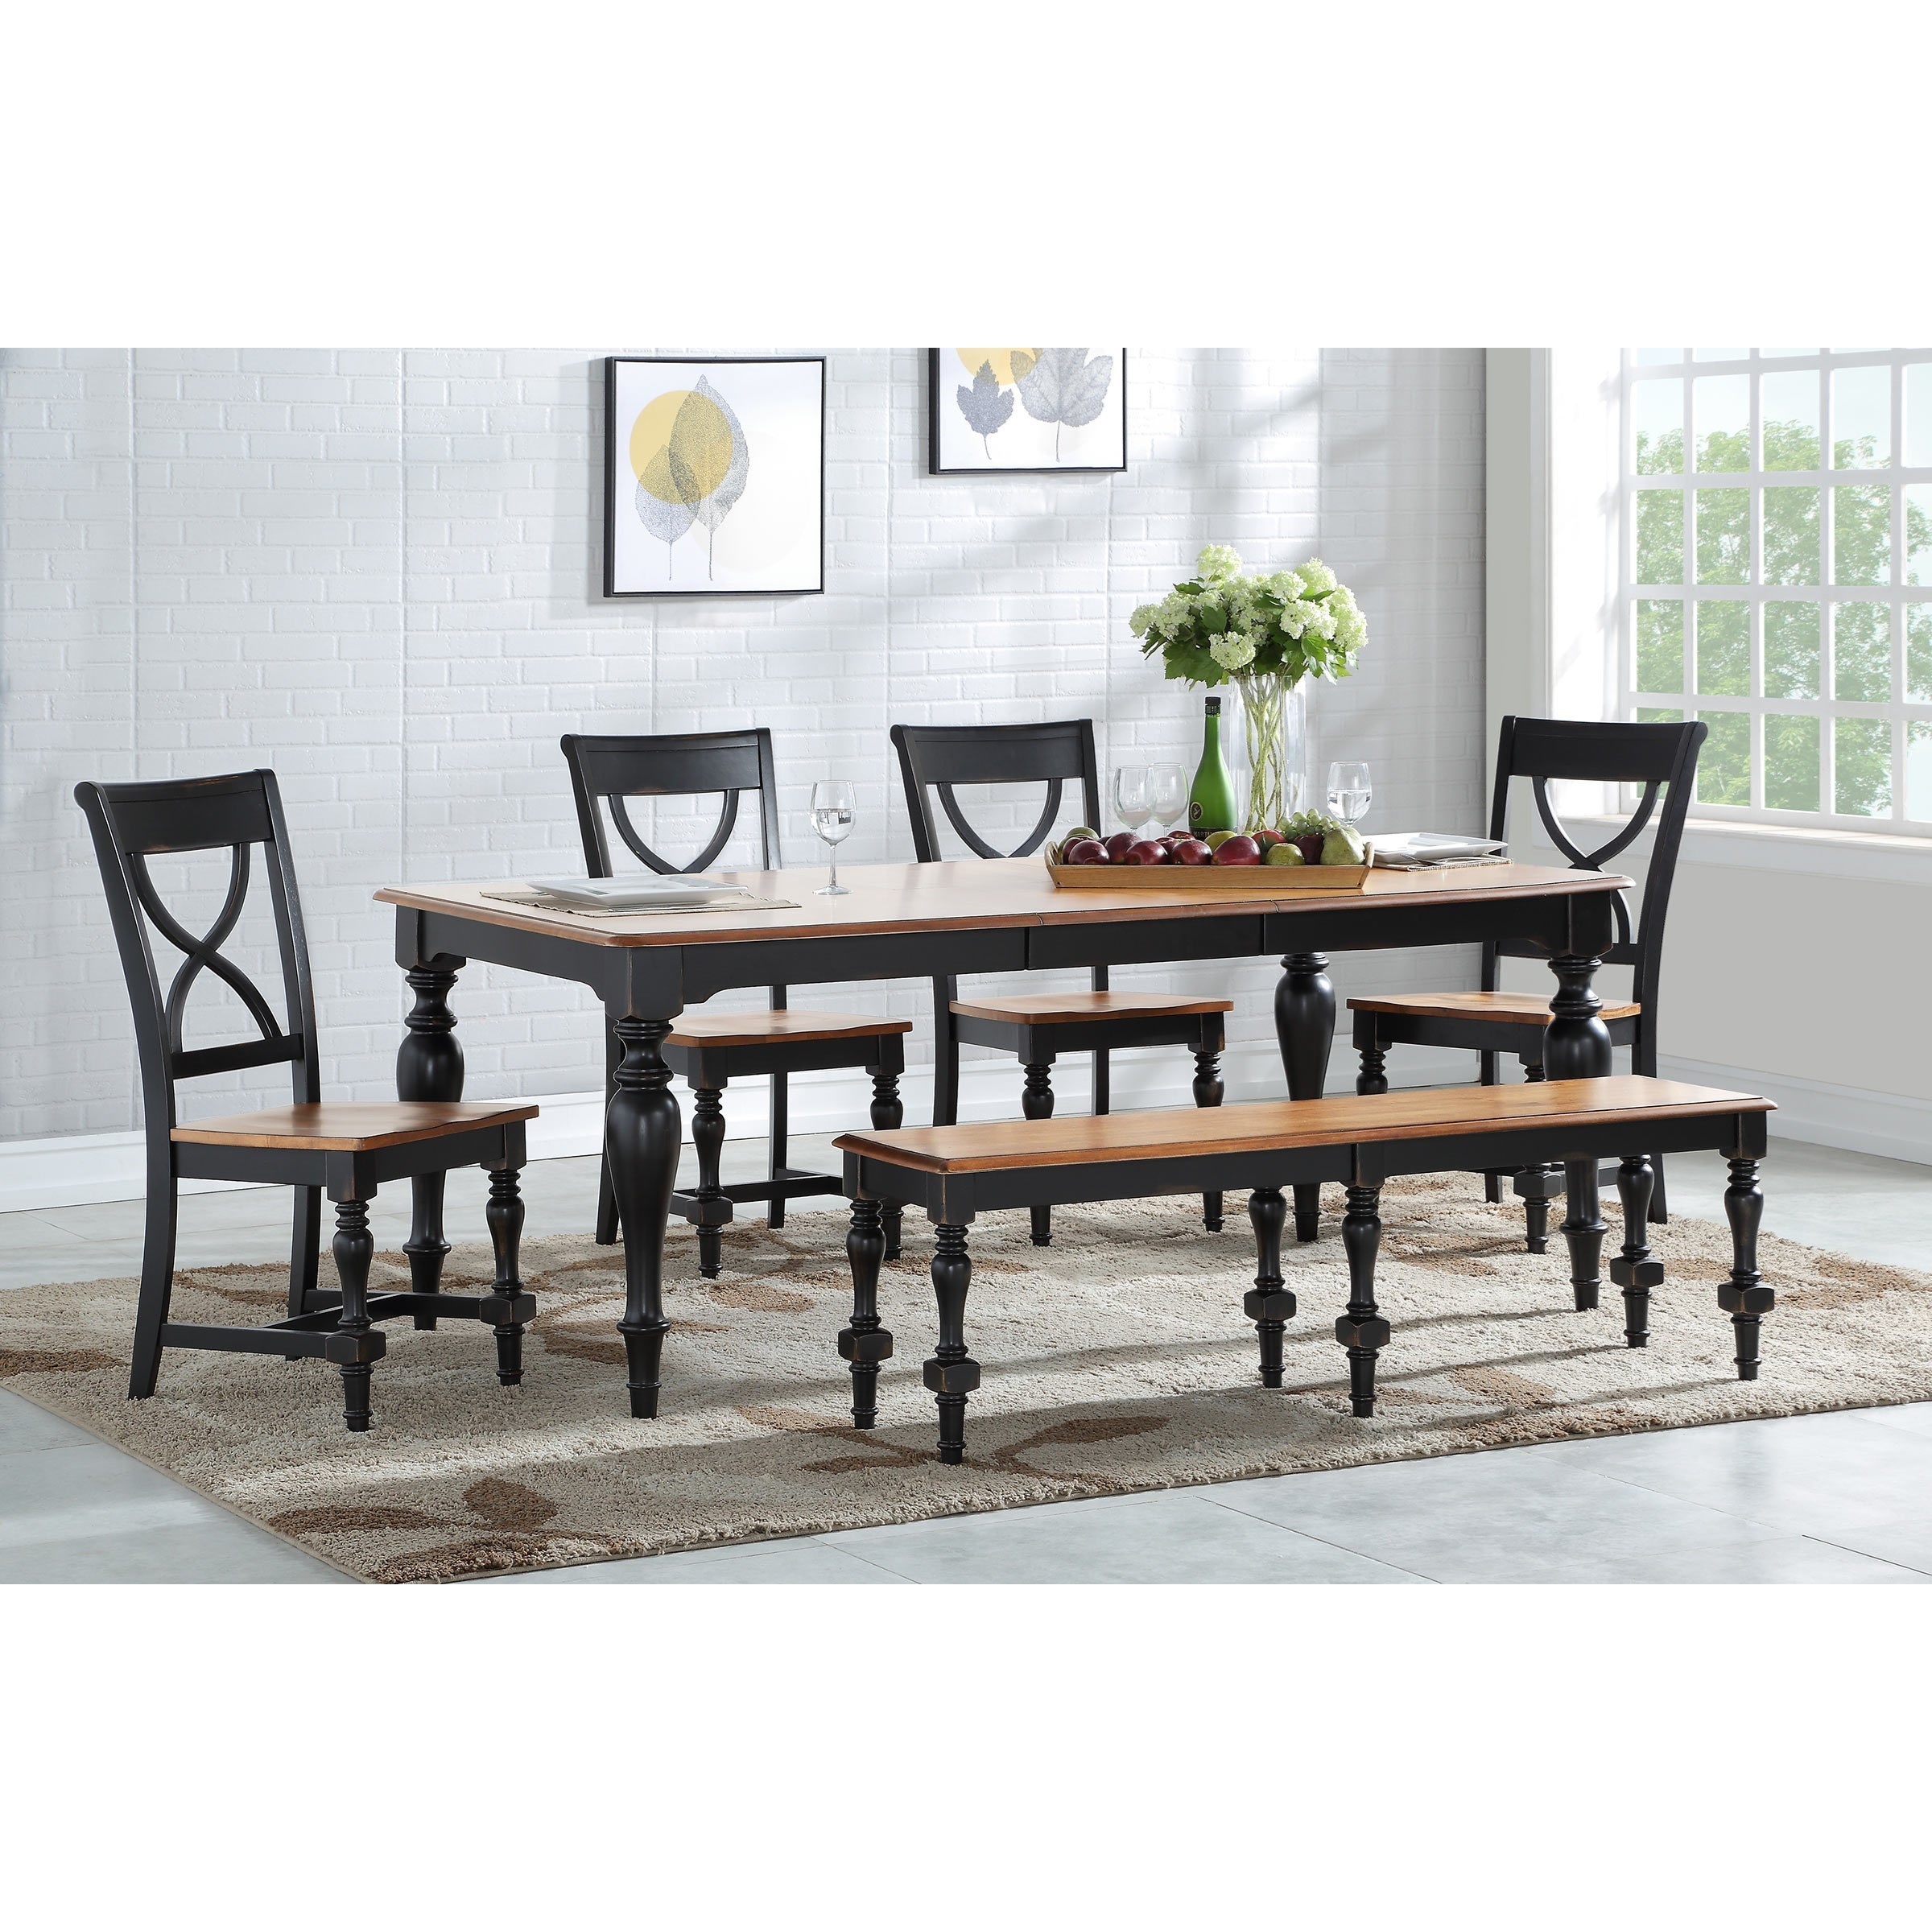 Winners Only Torrance Casual Dining Table And Chair Set With Bench Dunk Bright Furniture Table Chair Set With Bench